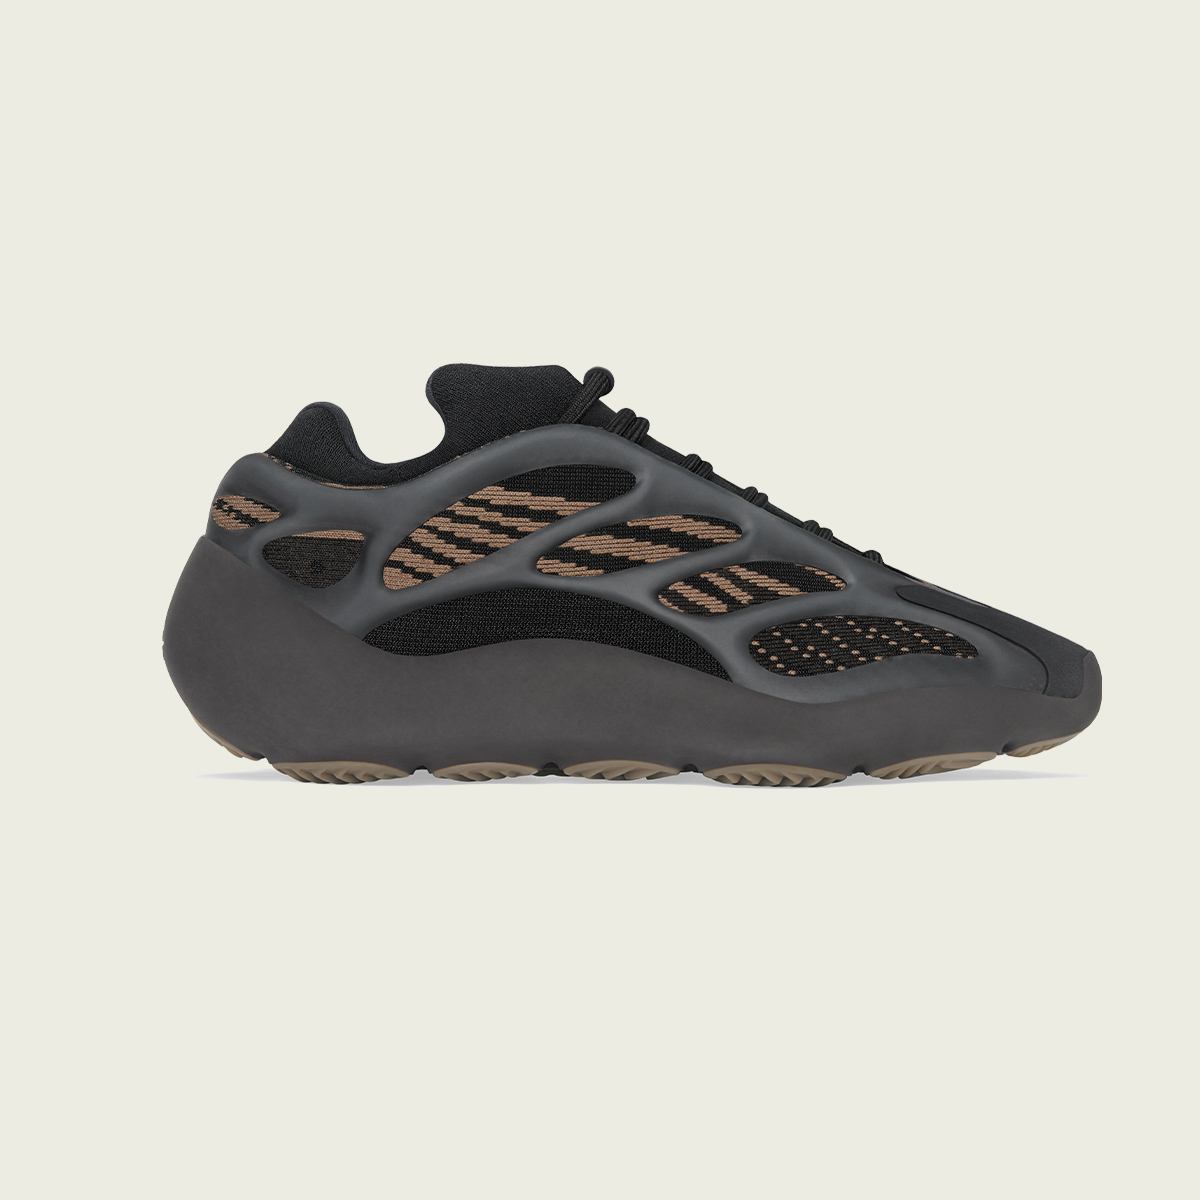 YEEZY 700 V3 'Clay Brown'